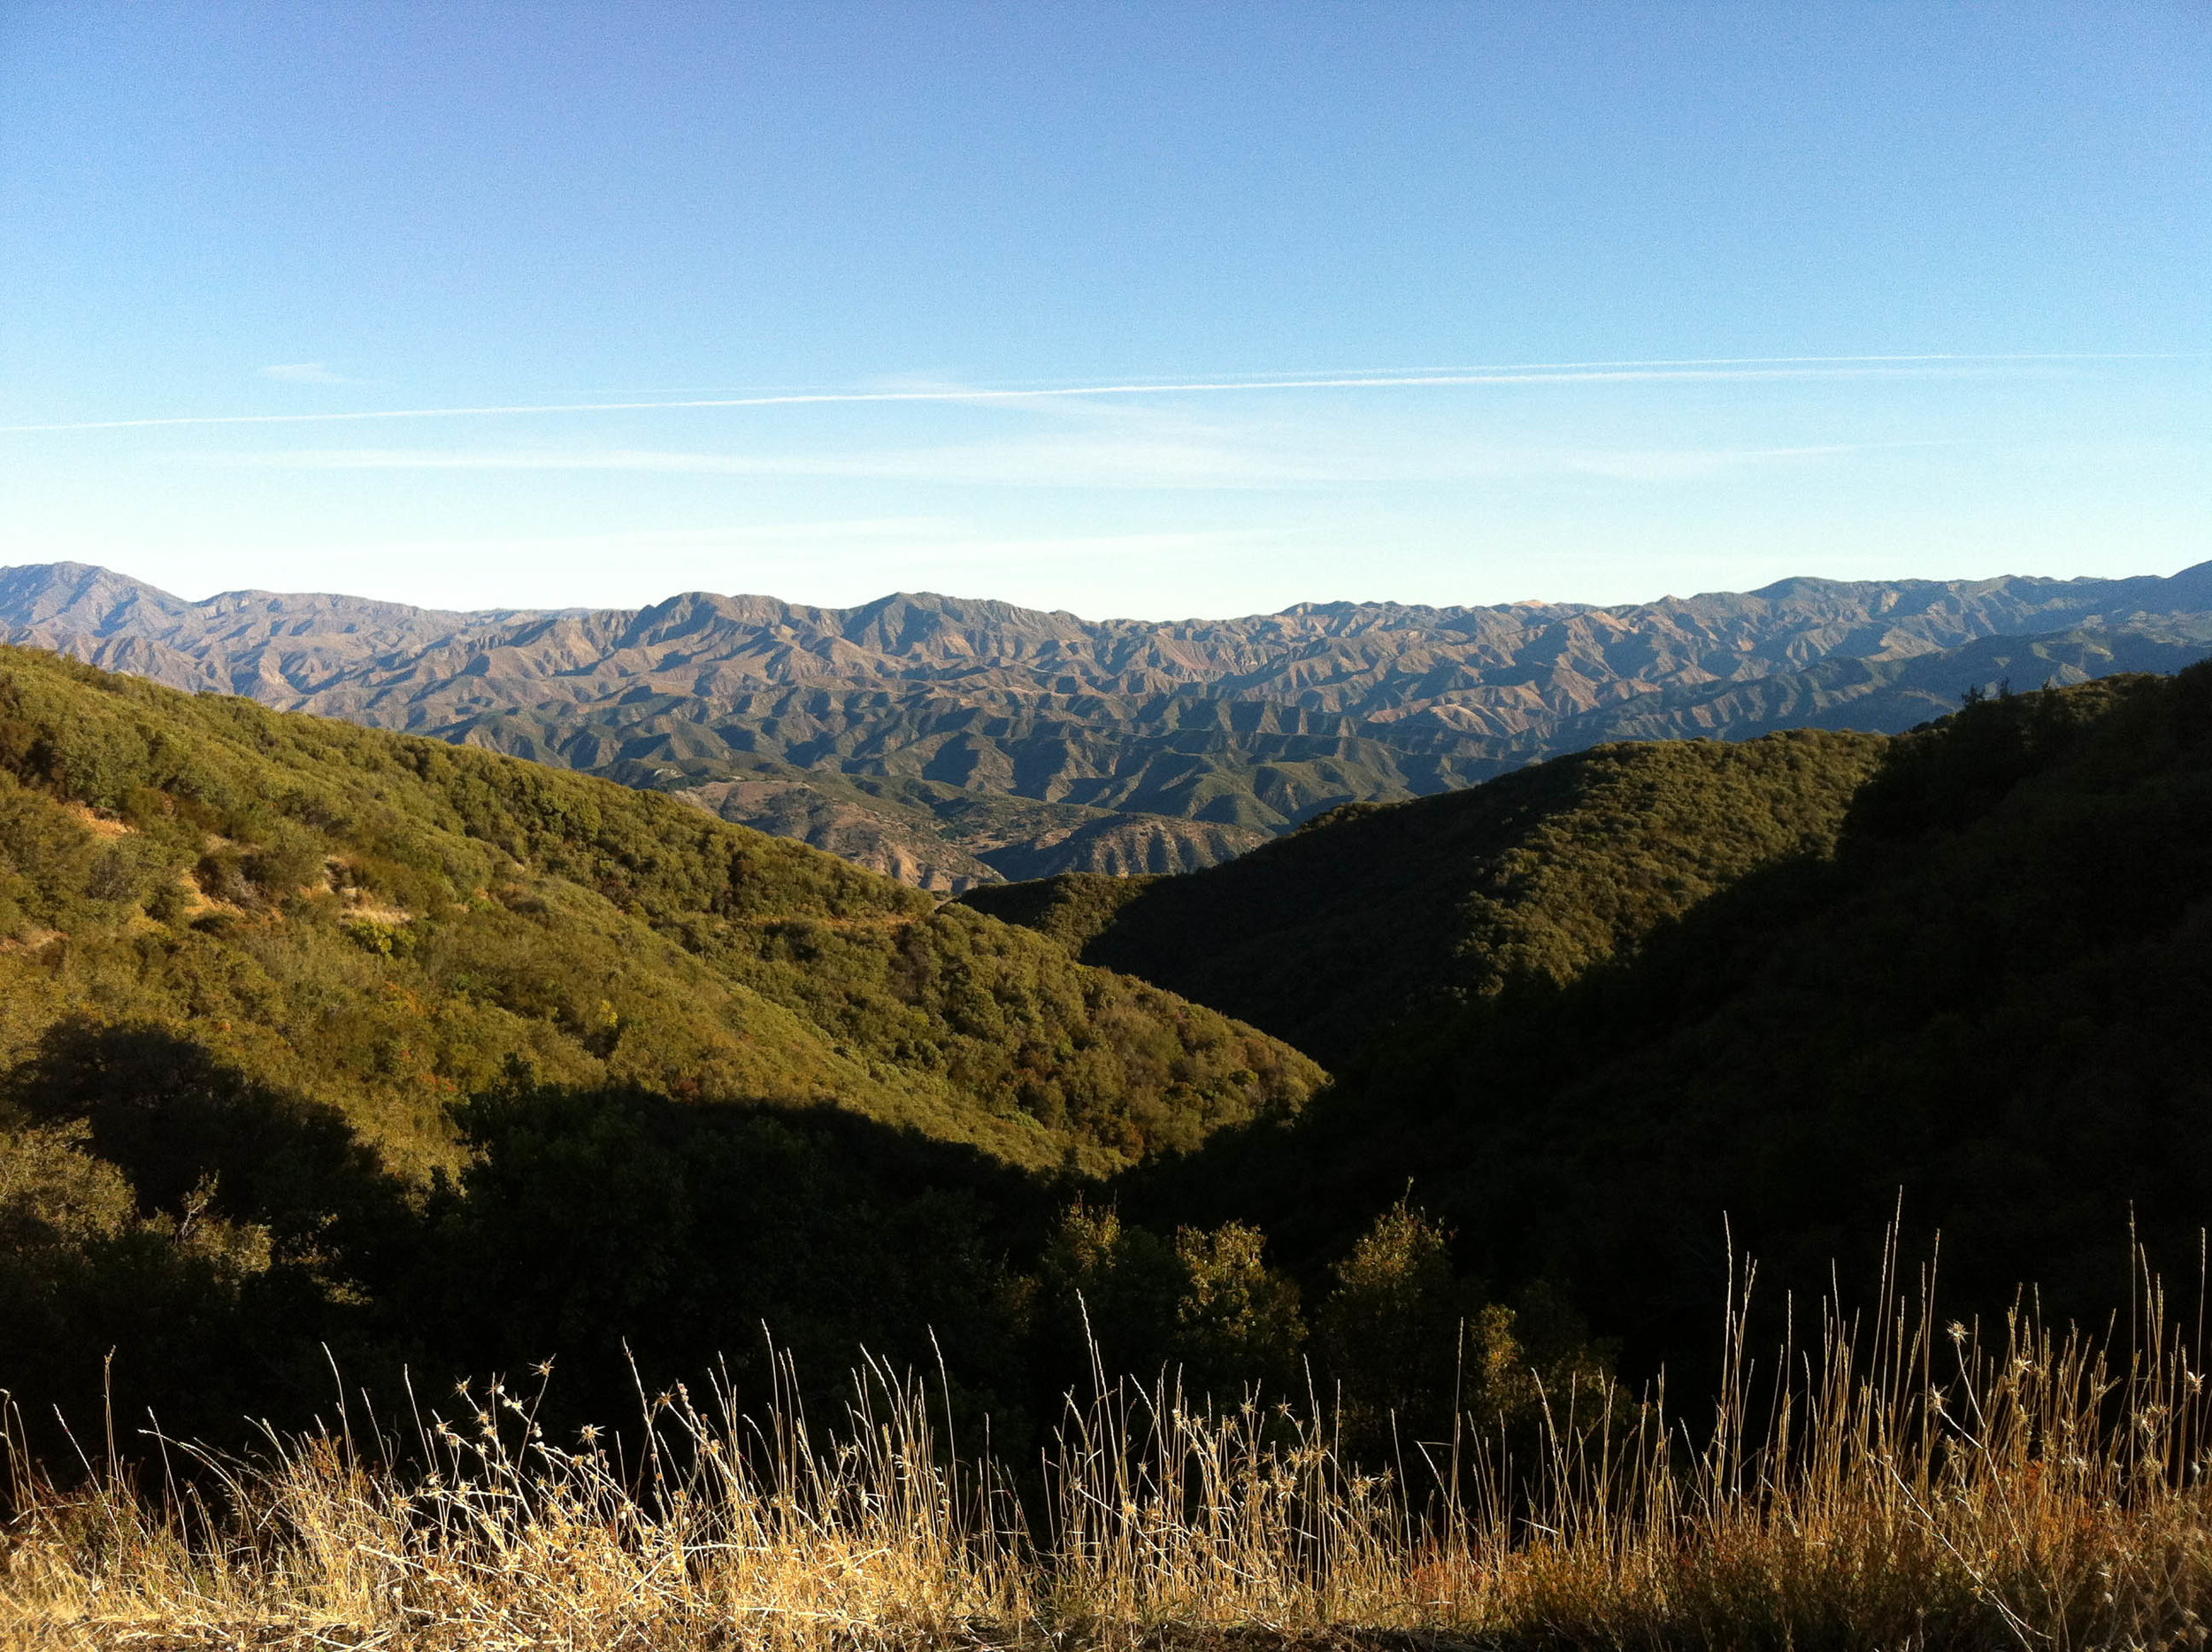 Looking north from the Camino Cielo